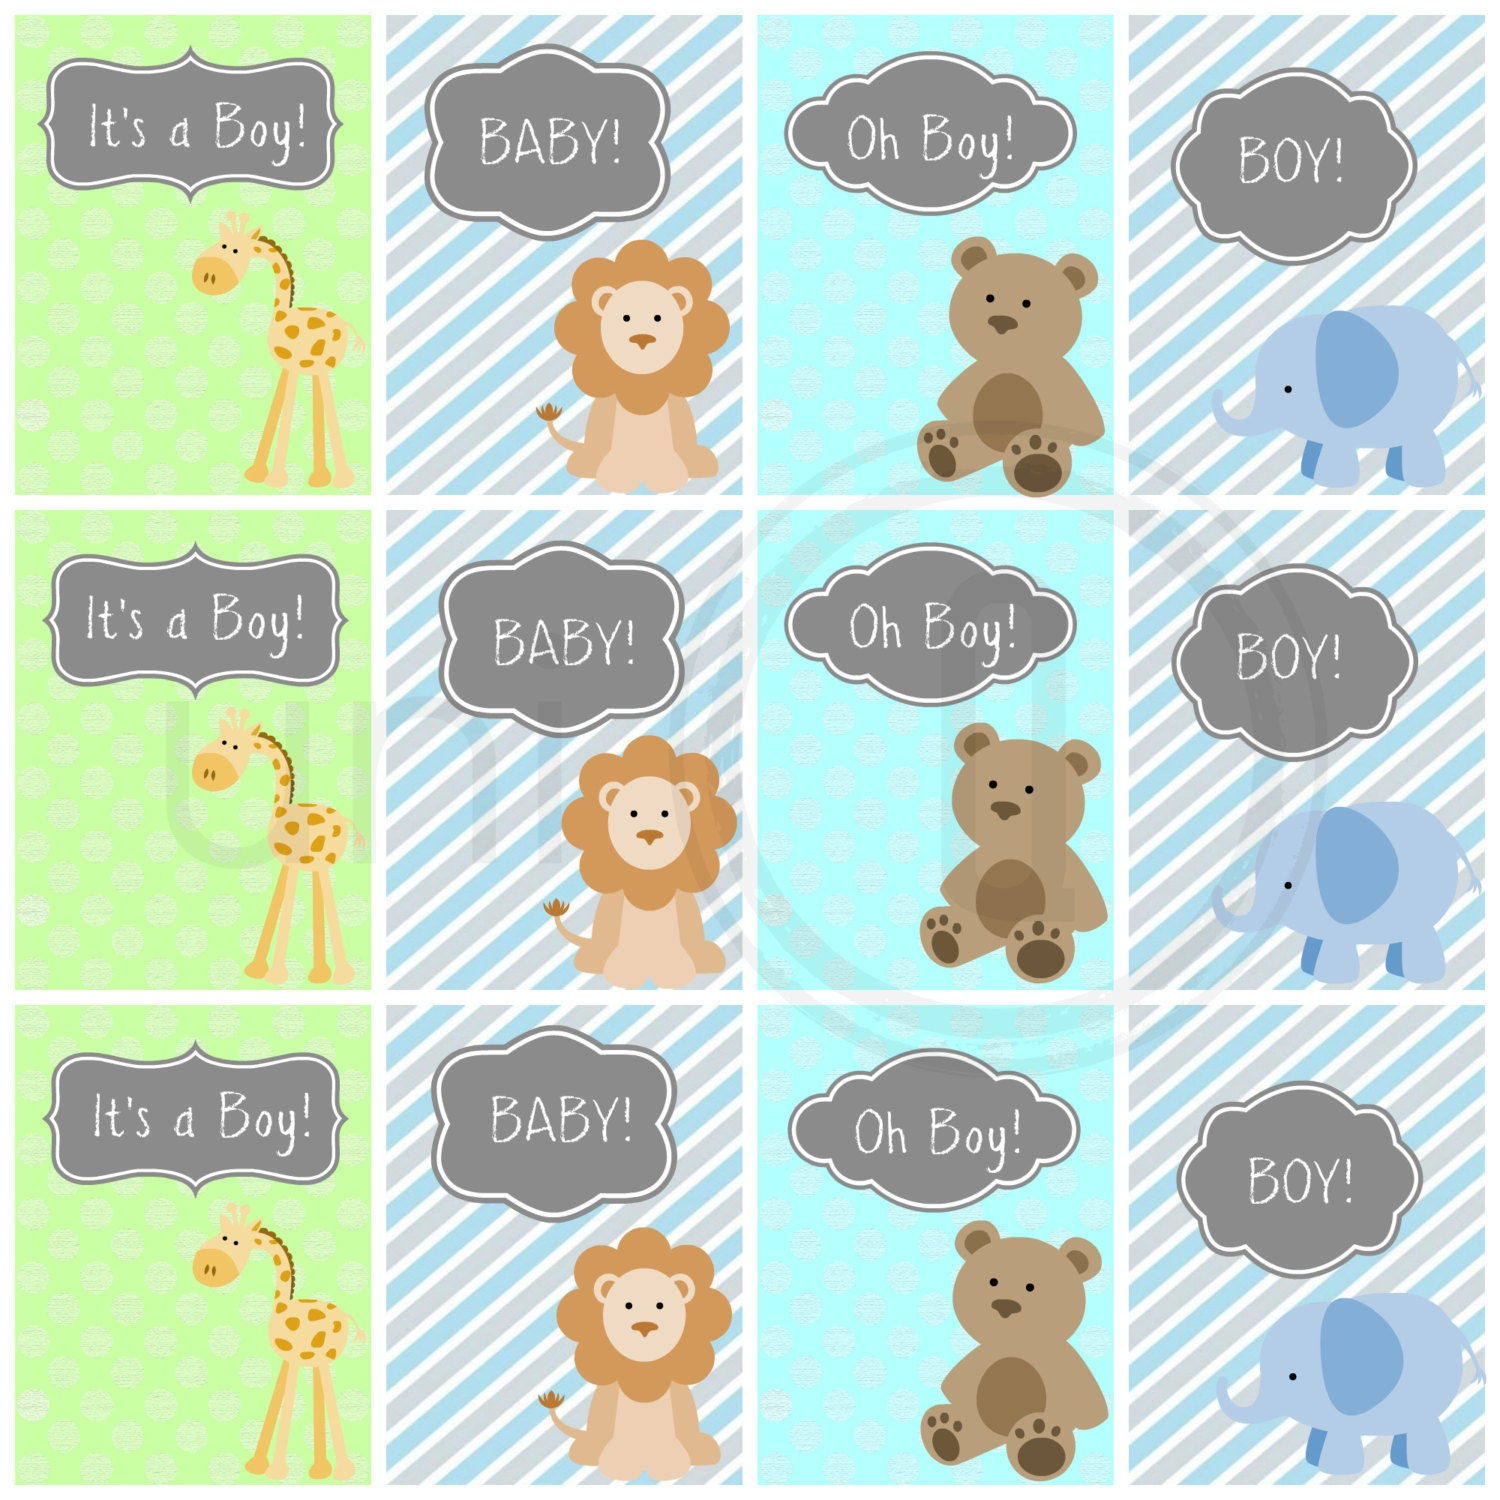 Baby Boy Gift Tags : Baby boy gift tags shower digital zoo animal